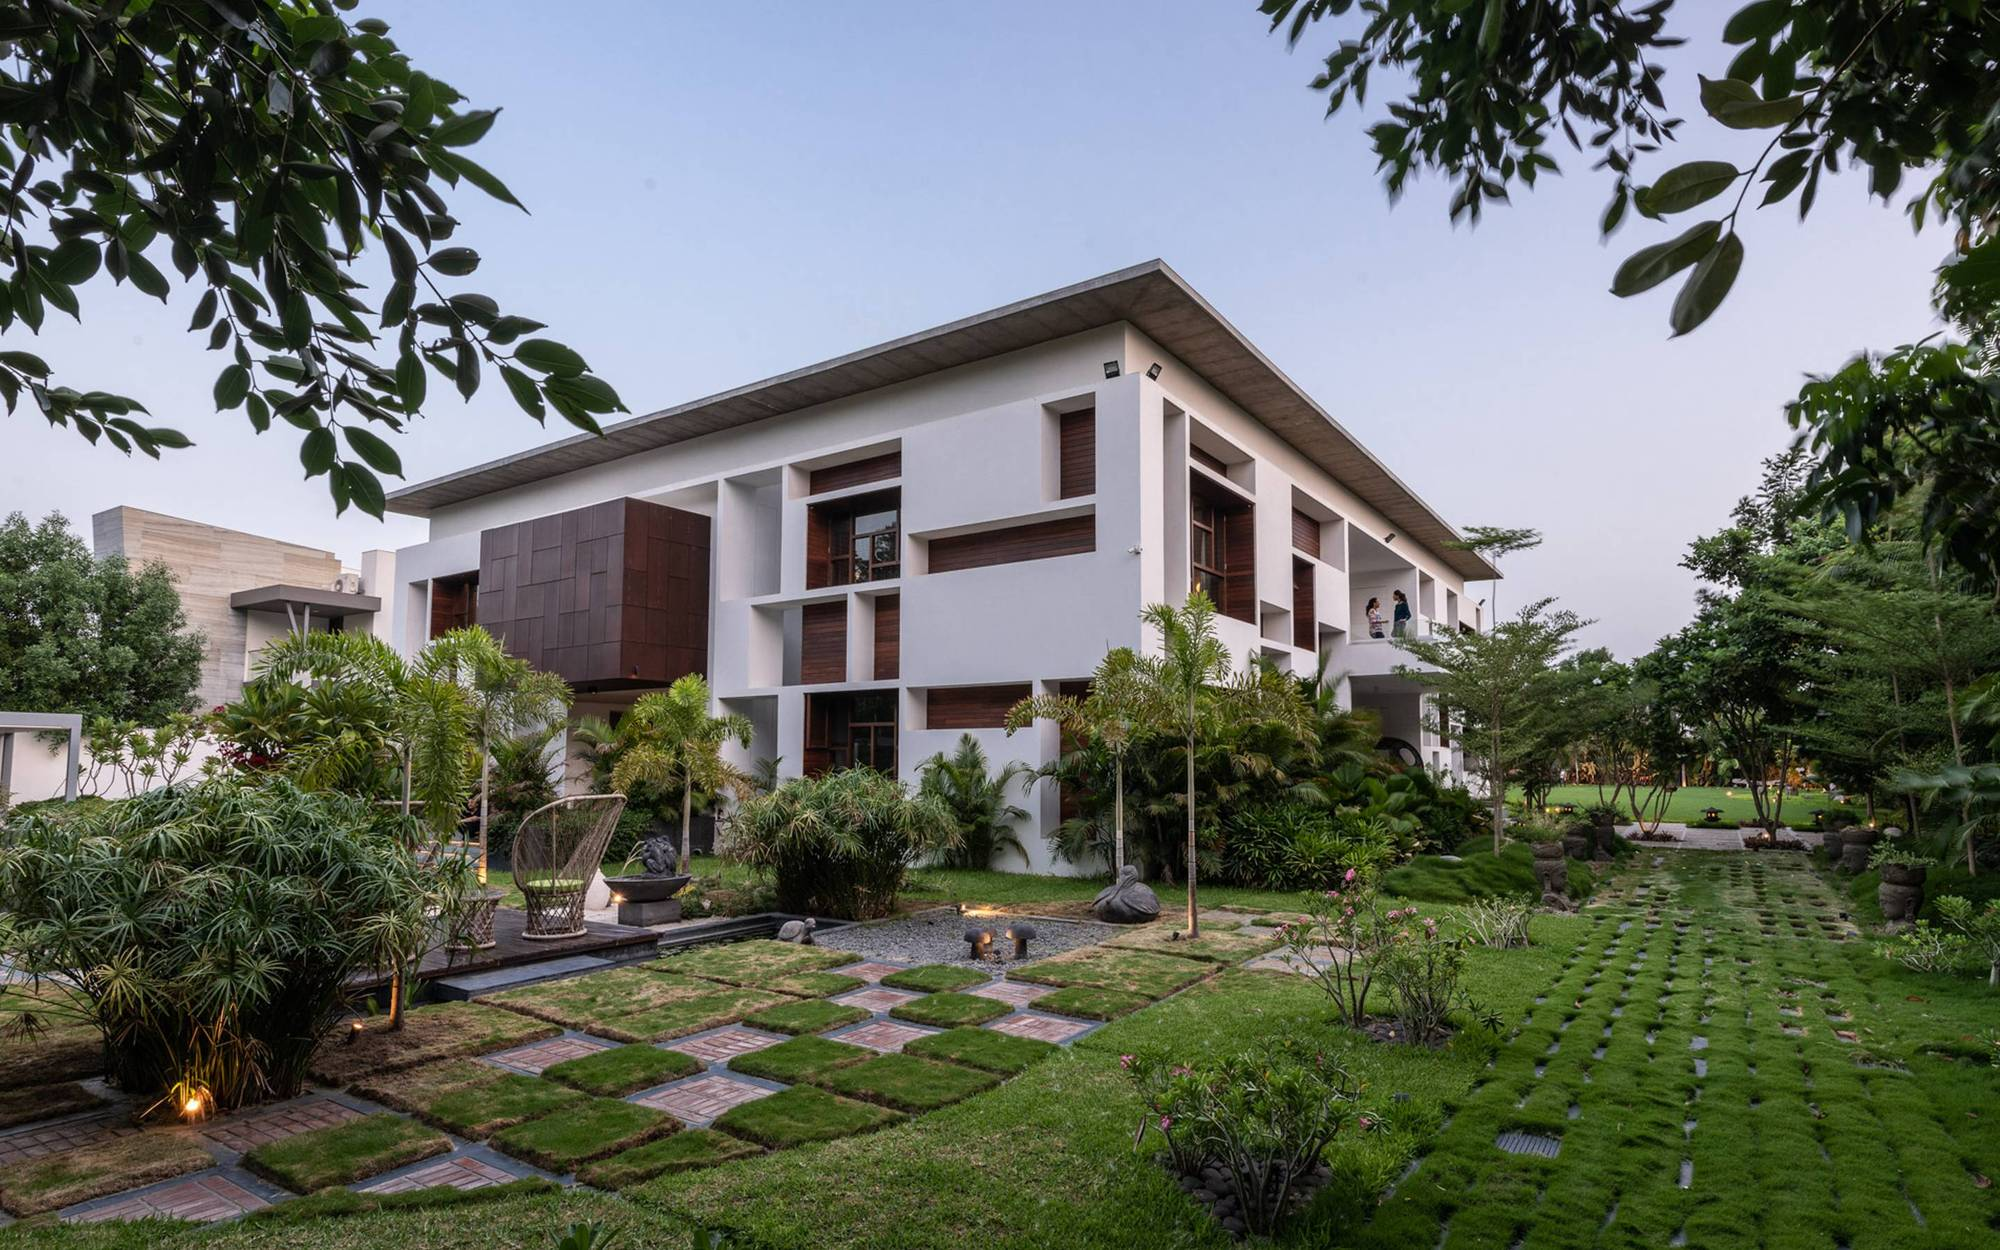 The Courtyard House / Associated Architects